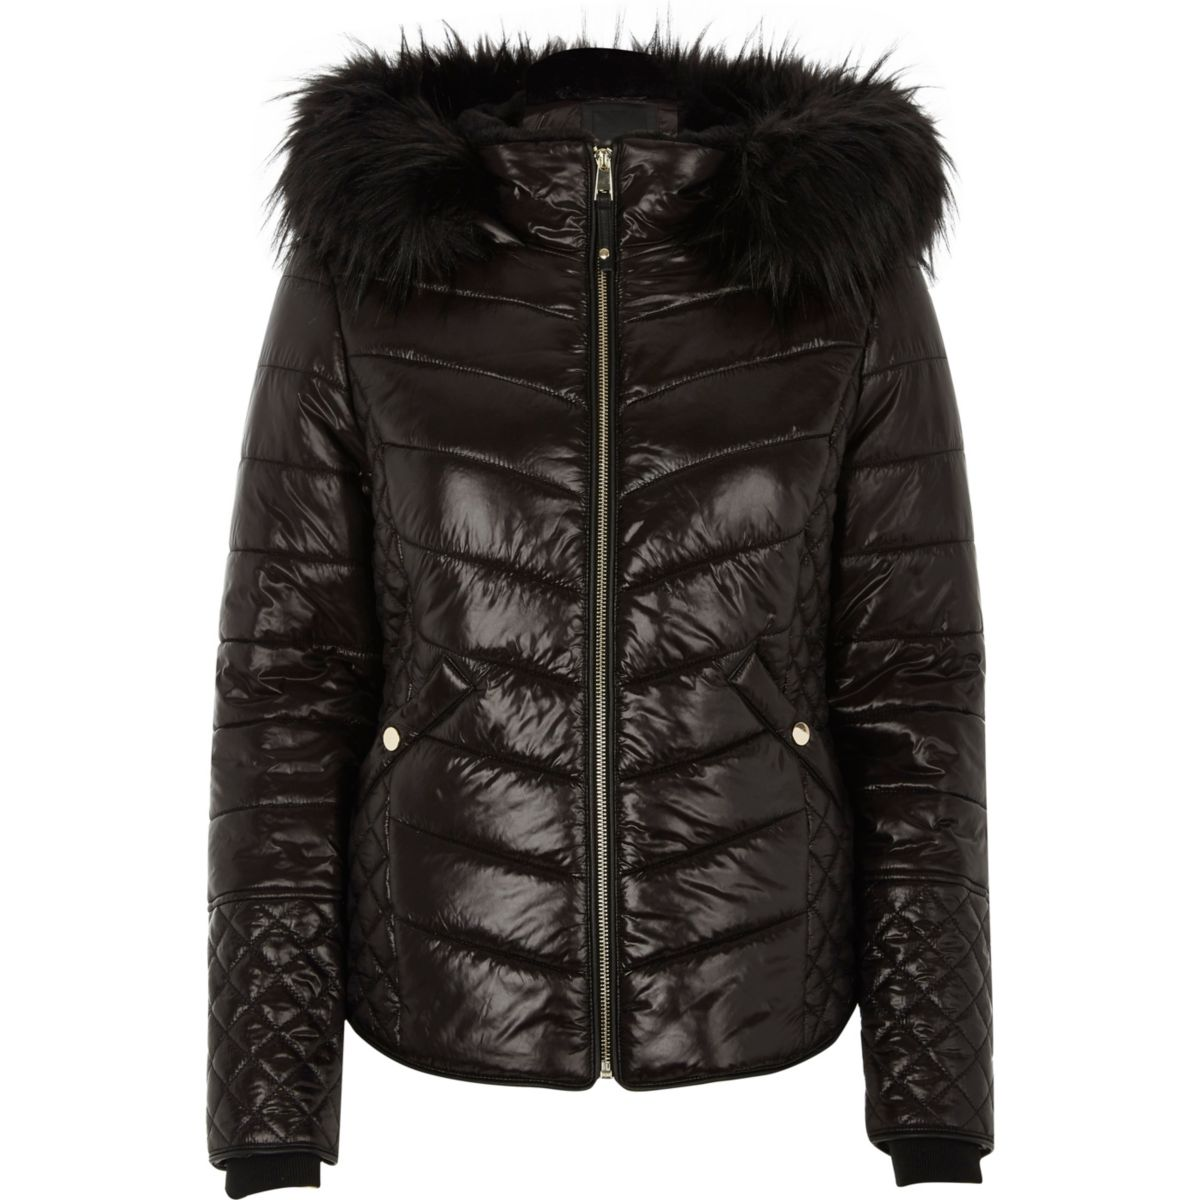 Black high shine hooded quilted jacket